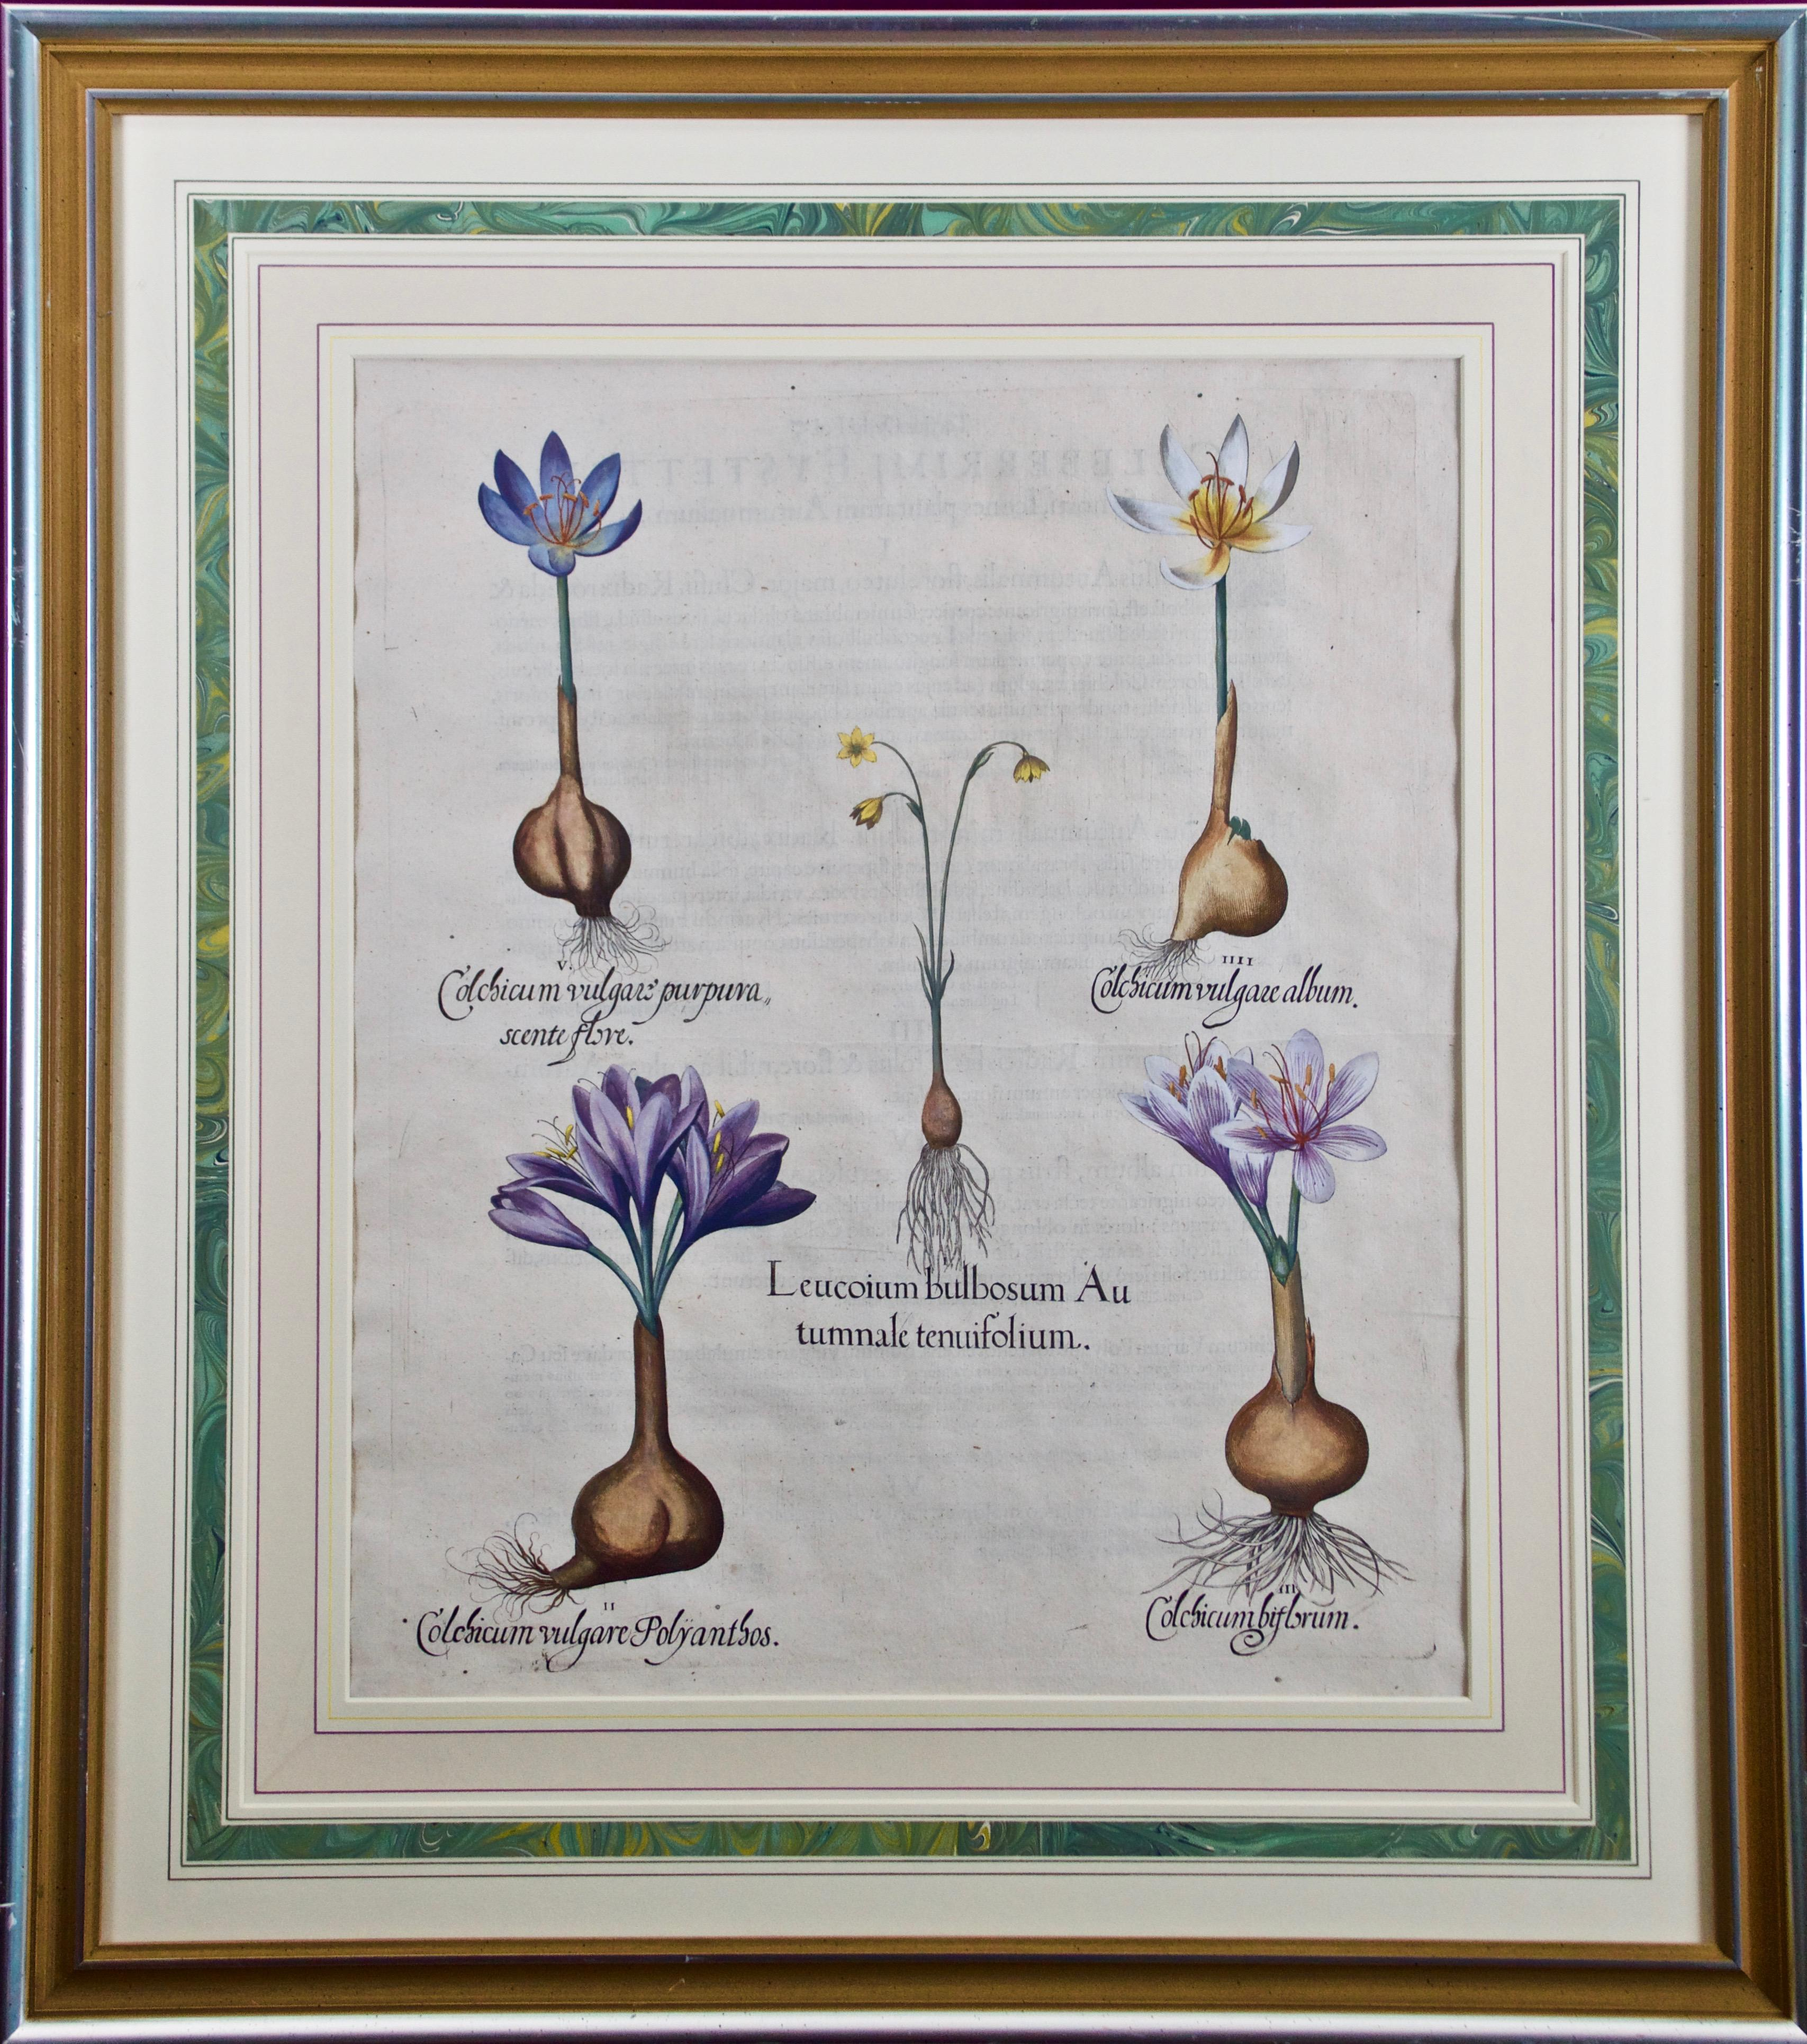 Besler 17th C Botanical Engraving of Autumn Snowflake and Meadow Saffron Flowers